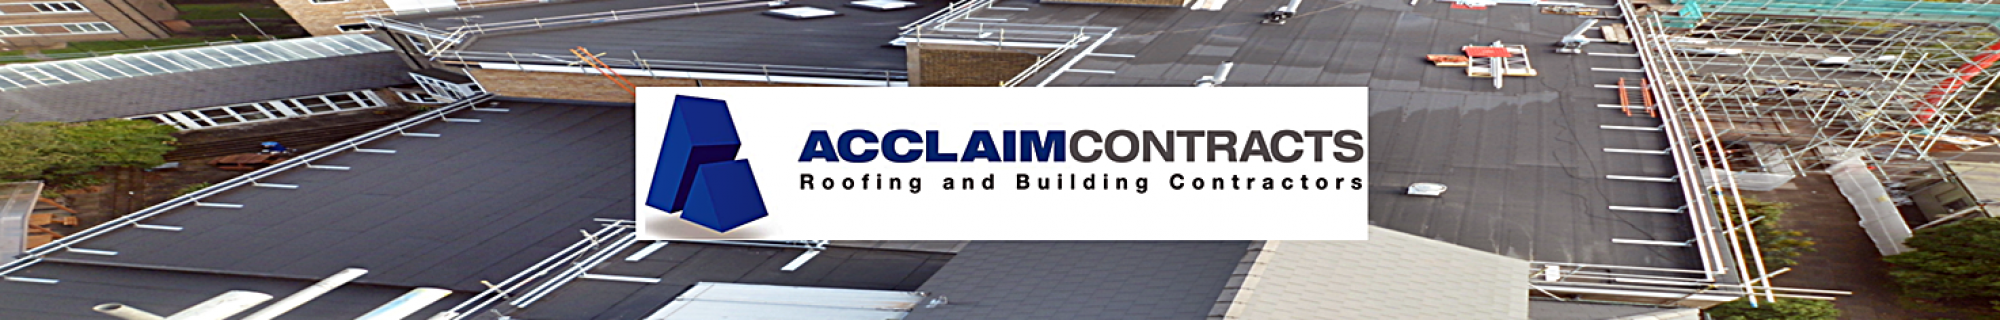 Acclaim Contracts Roofing and Building Contractors